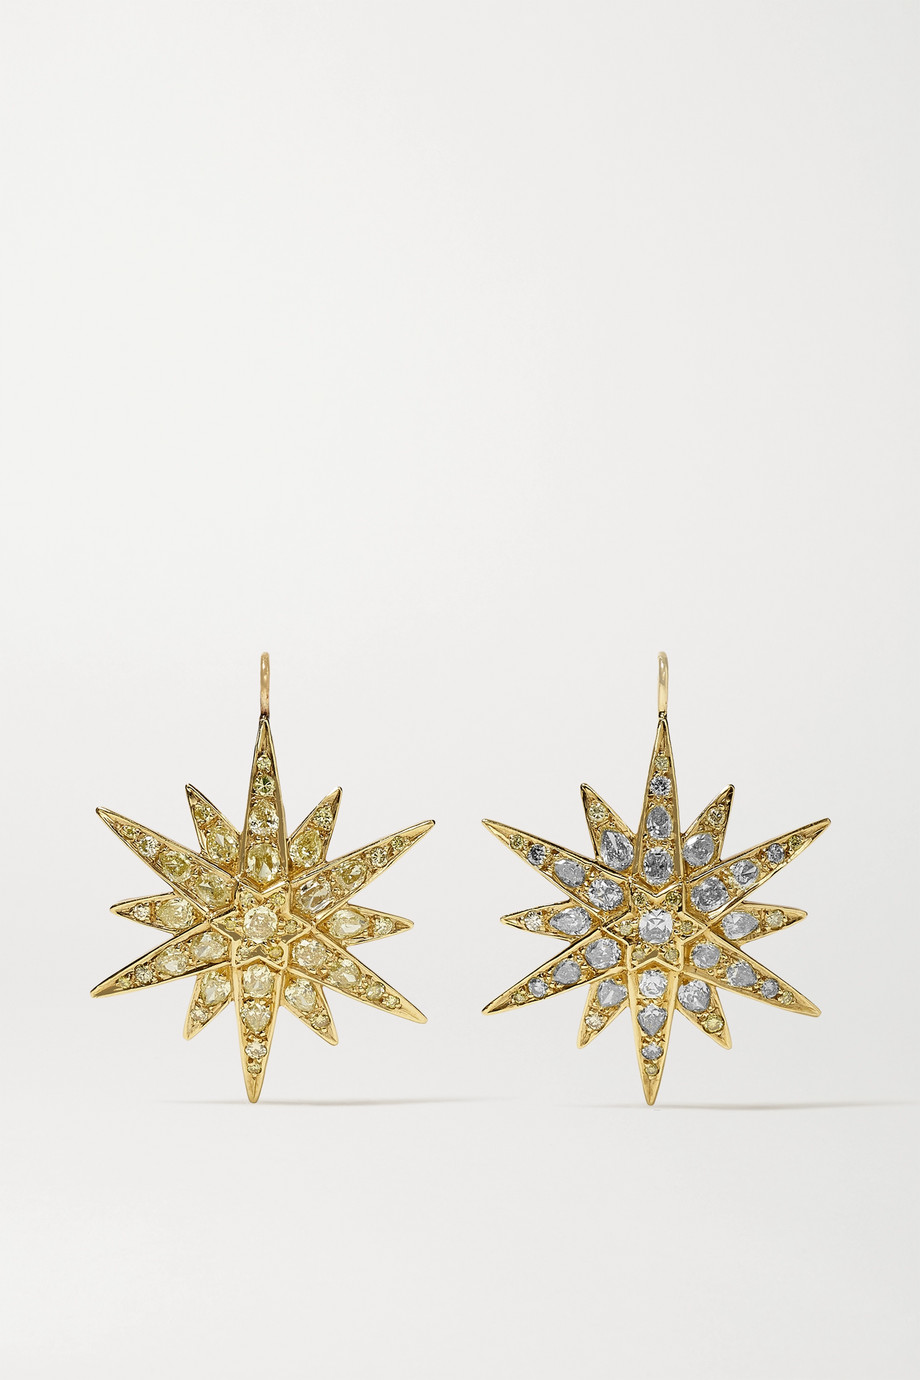 FRED LEIGHTON Collection 18-karat gold diamond earrings